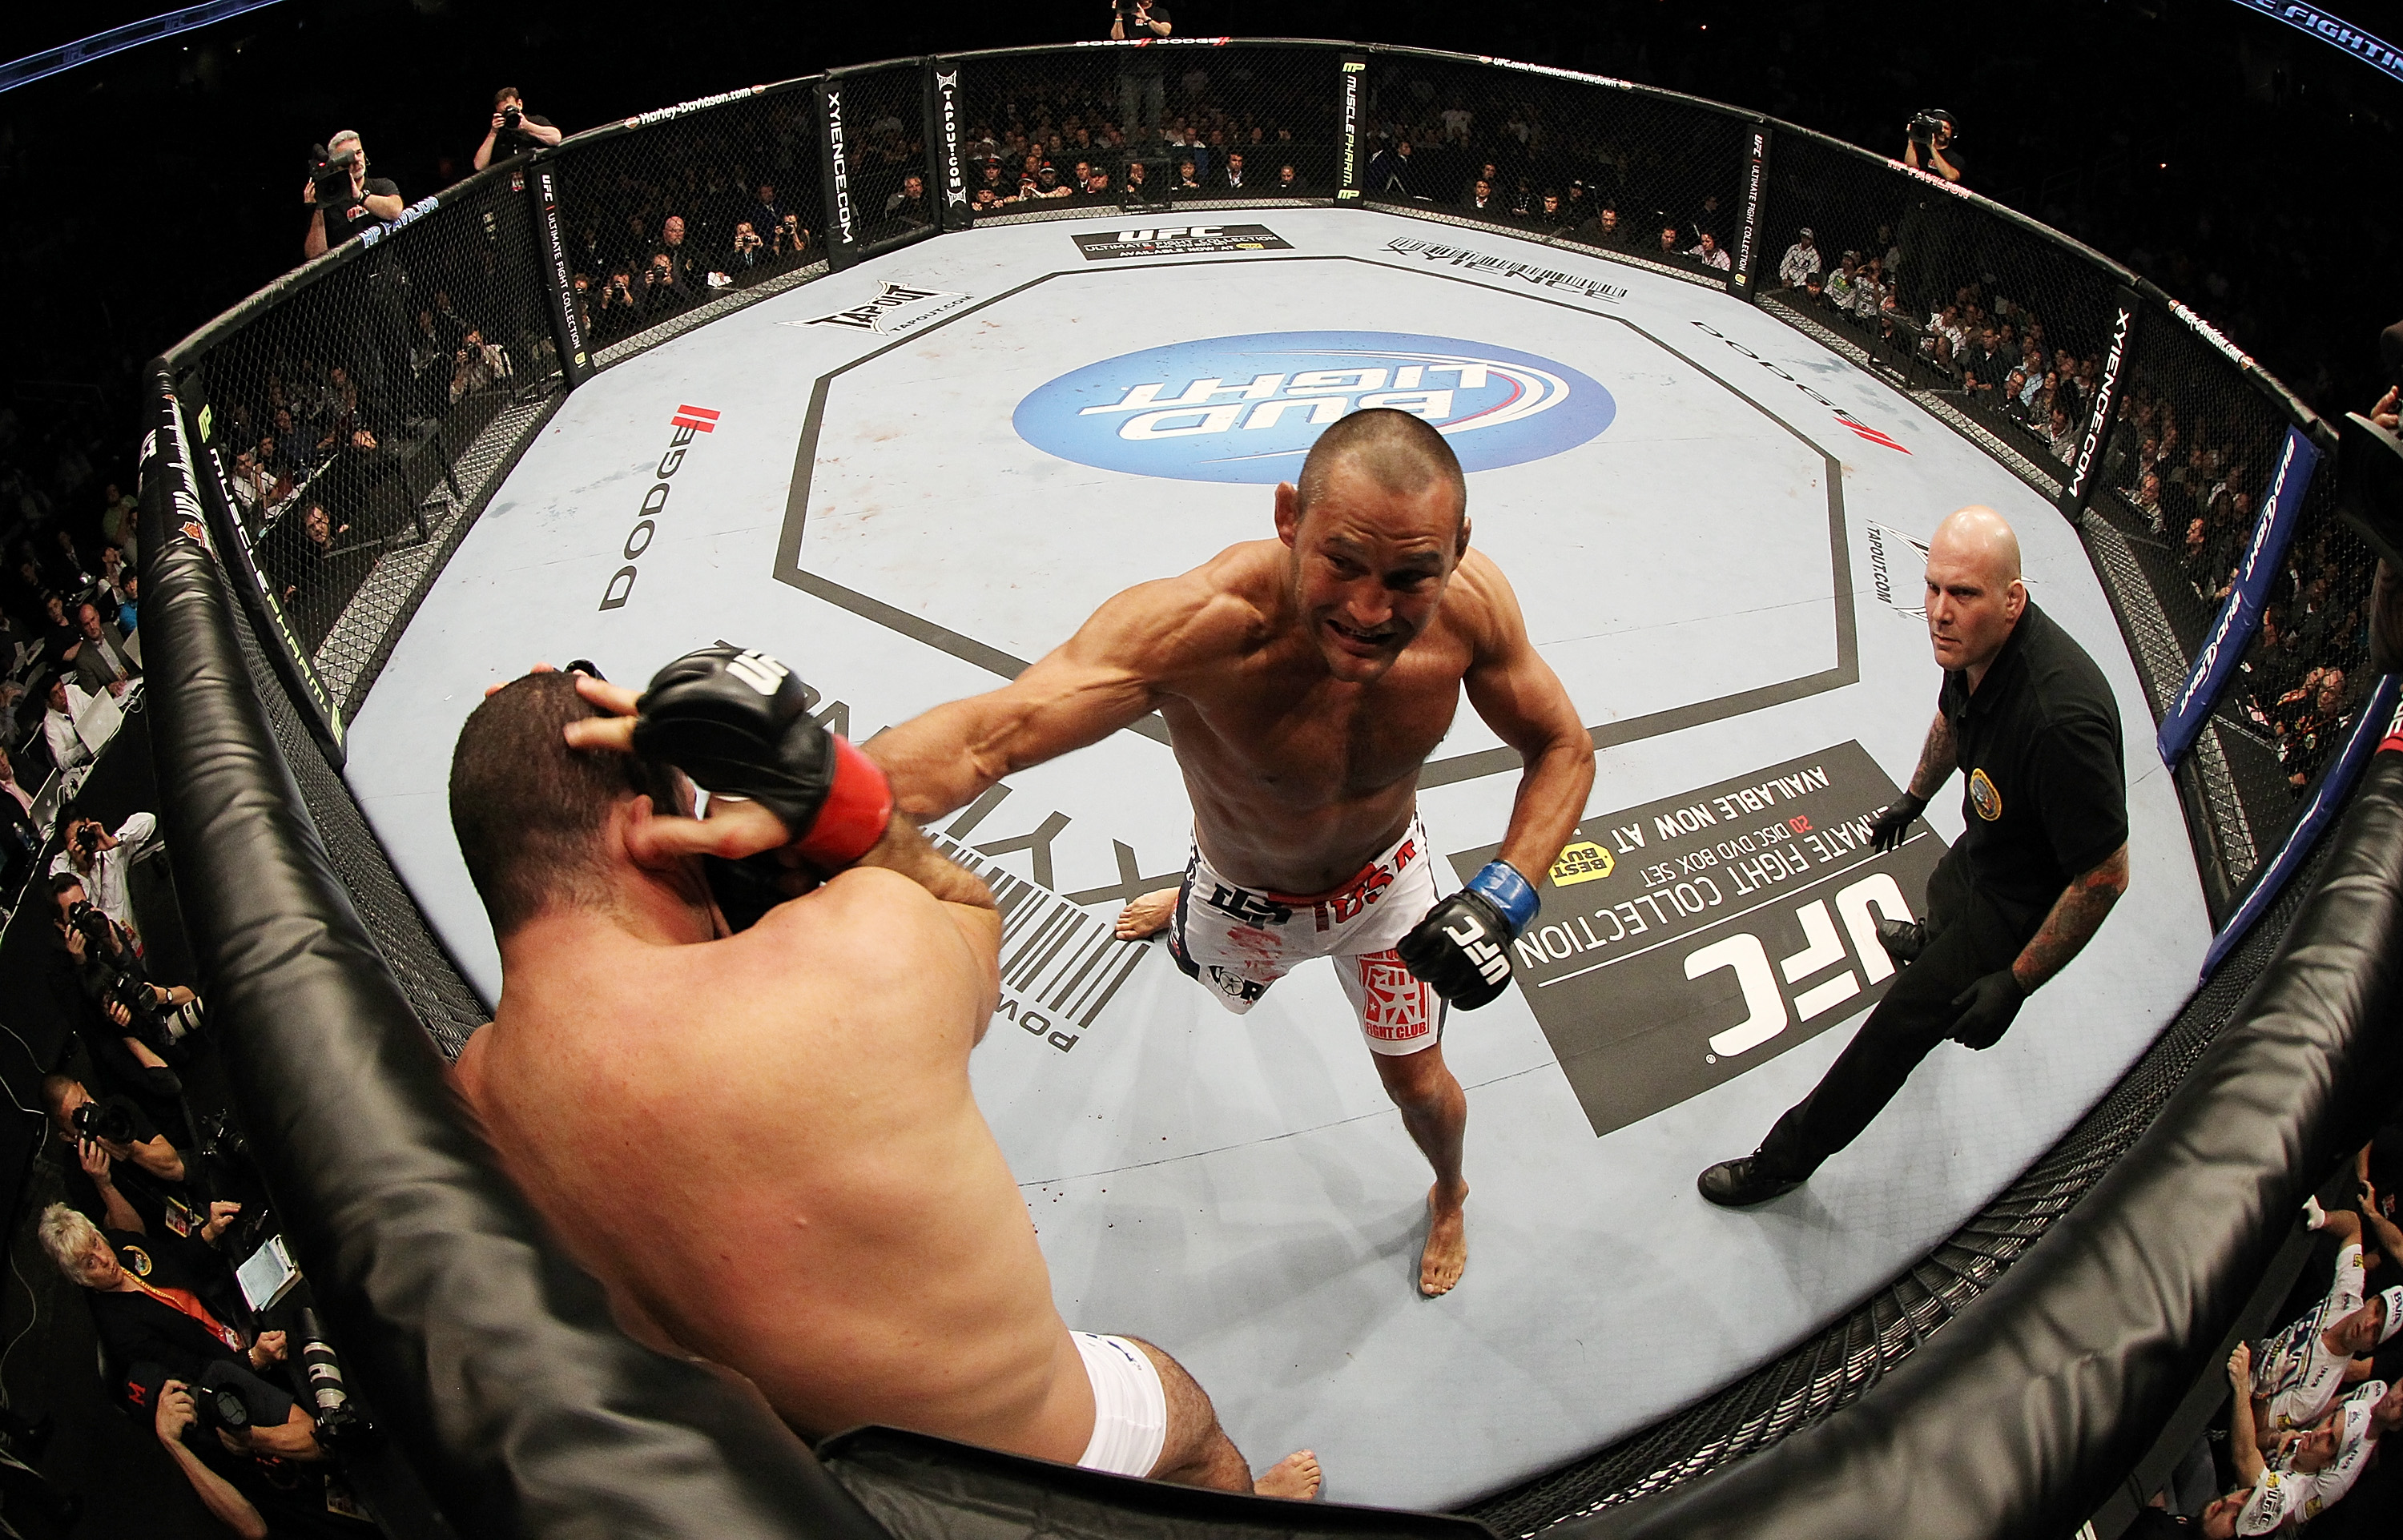 SAN JOSE, CA - NOVEMBER 19:  (R-L) Dan Henderson punches Mauricio Rua during an UFC Light Heavyweight bout at the HP Pavillion on November 19, 2011 in San Jose, California.  (Photo by Josh Hedges/Zuffa LLC/Zuffa LLC via Getty Images)